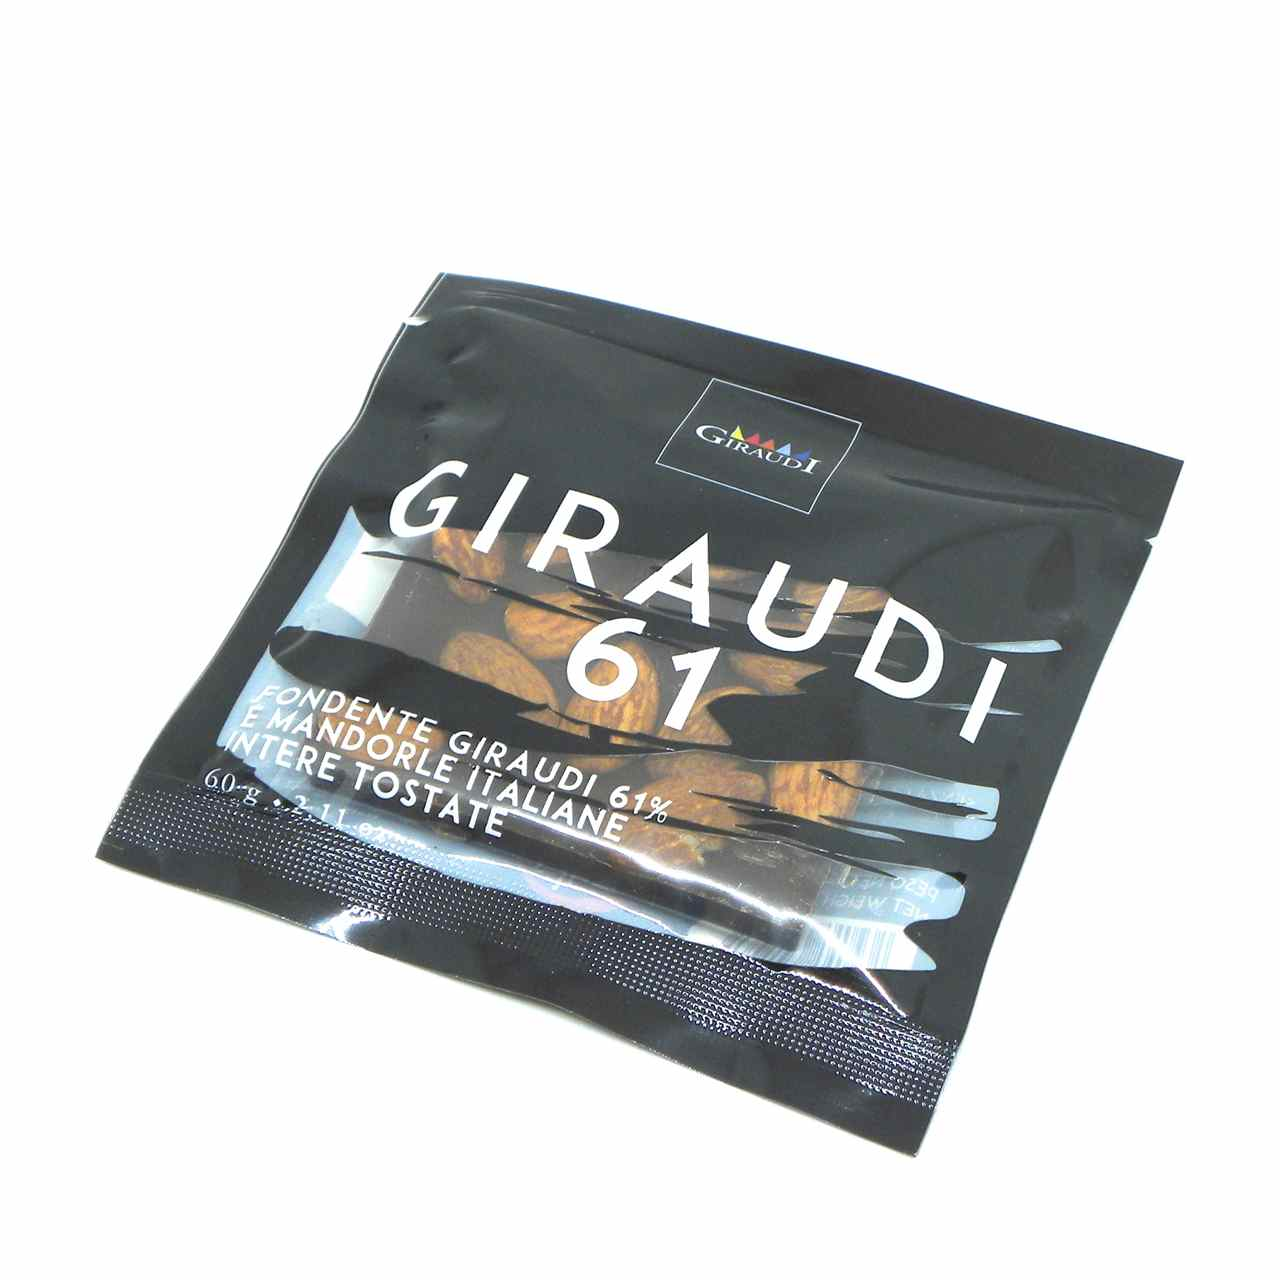 Giraudi tavoletta cioccolato fondente mandorle – Giraudi dark chocolate bar almonds – Gustorotondo – Italian food boutique